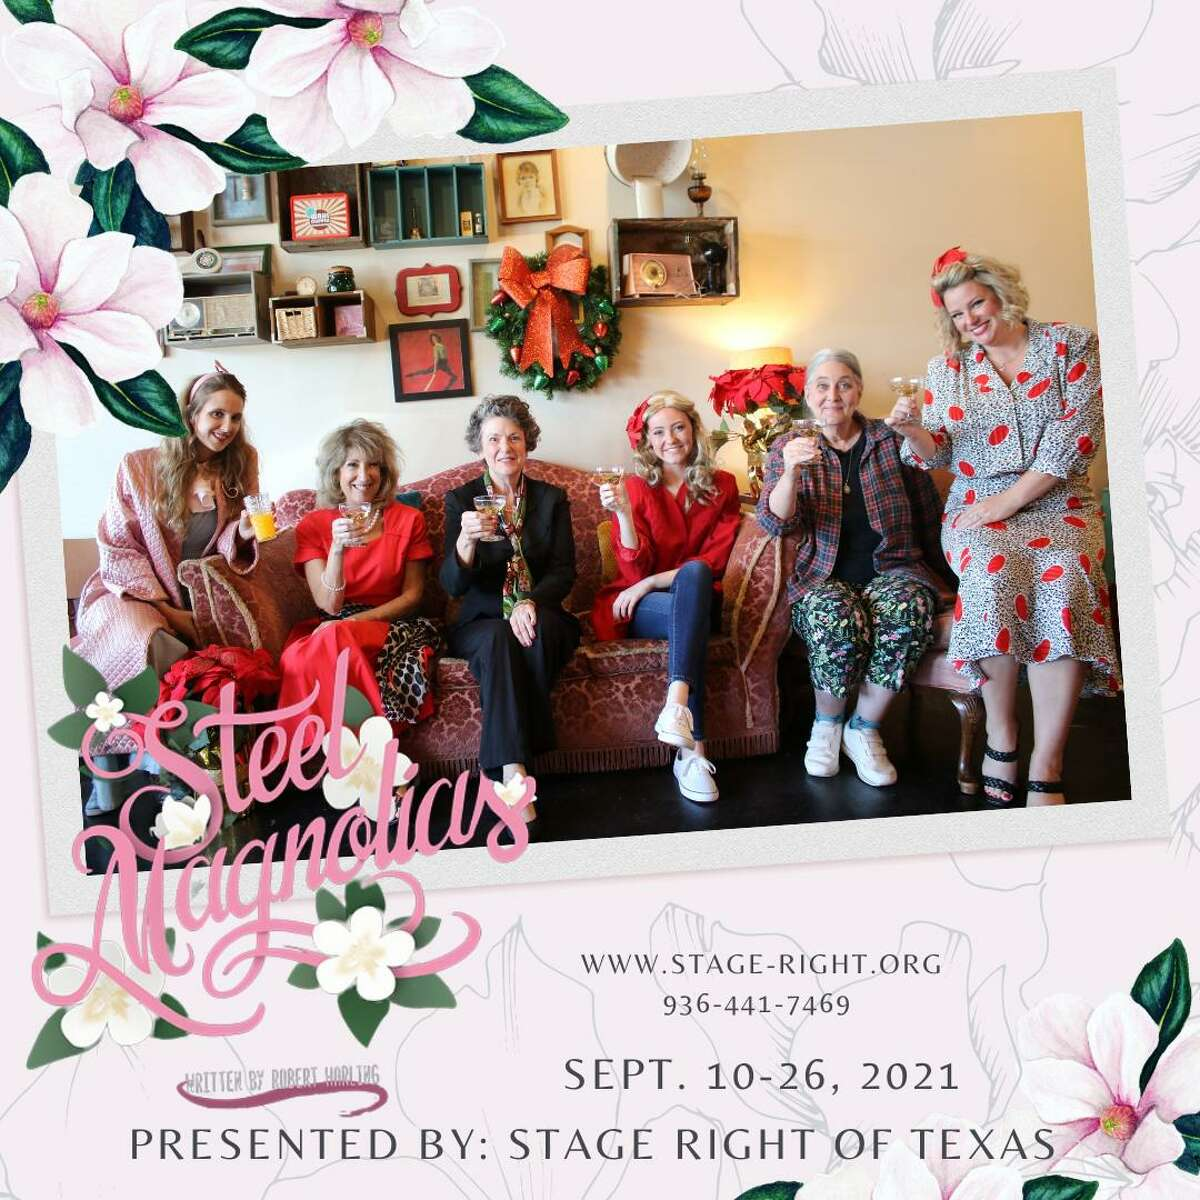 """Stage Right of Texas opens its new season with """"Steel Magnolias"""" at the Crighton Theatre. The show opens Sept. 10 and runs through Sept. 26. Visit www.stage-right.org or crightontheatre.org for tickets."""